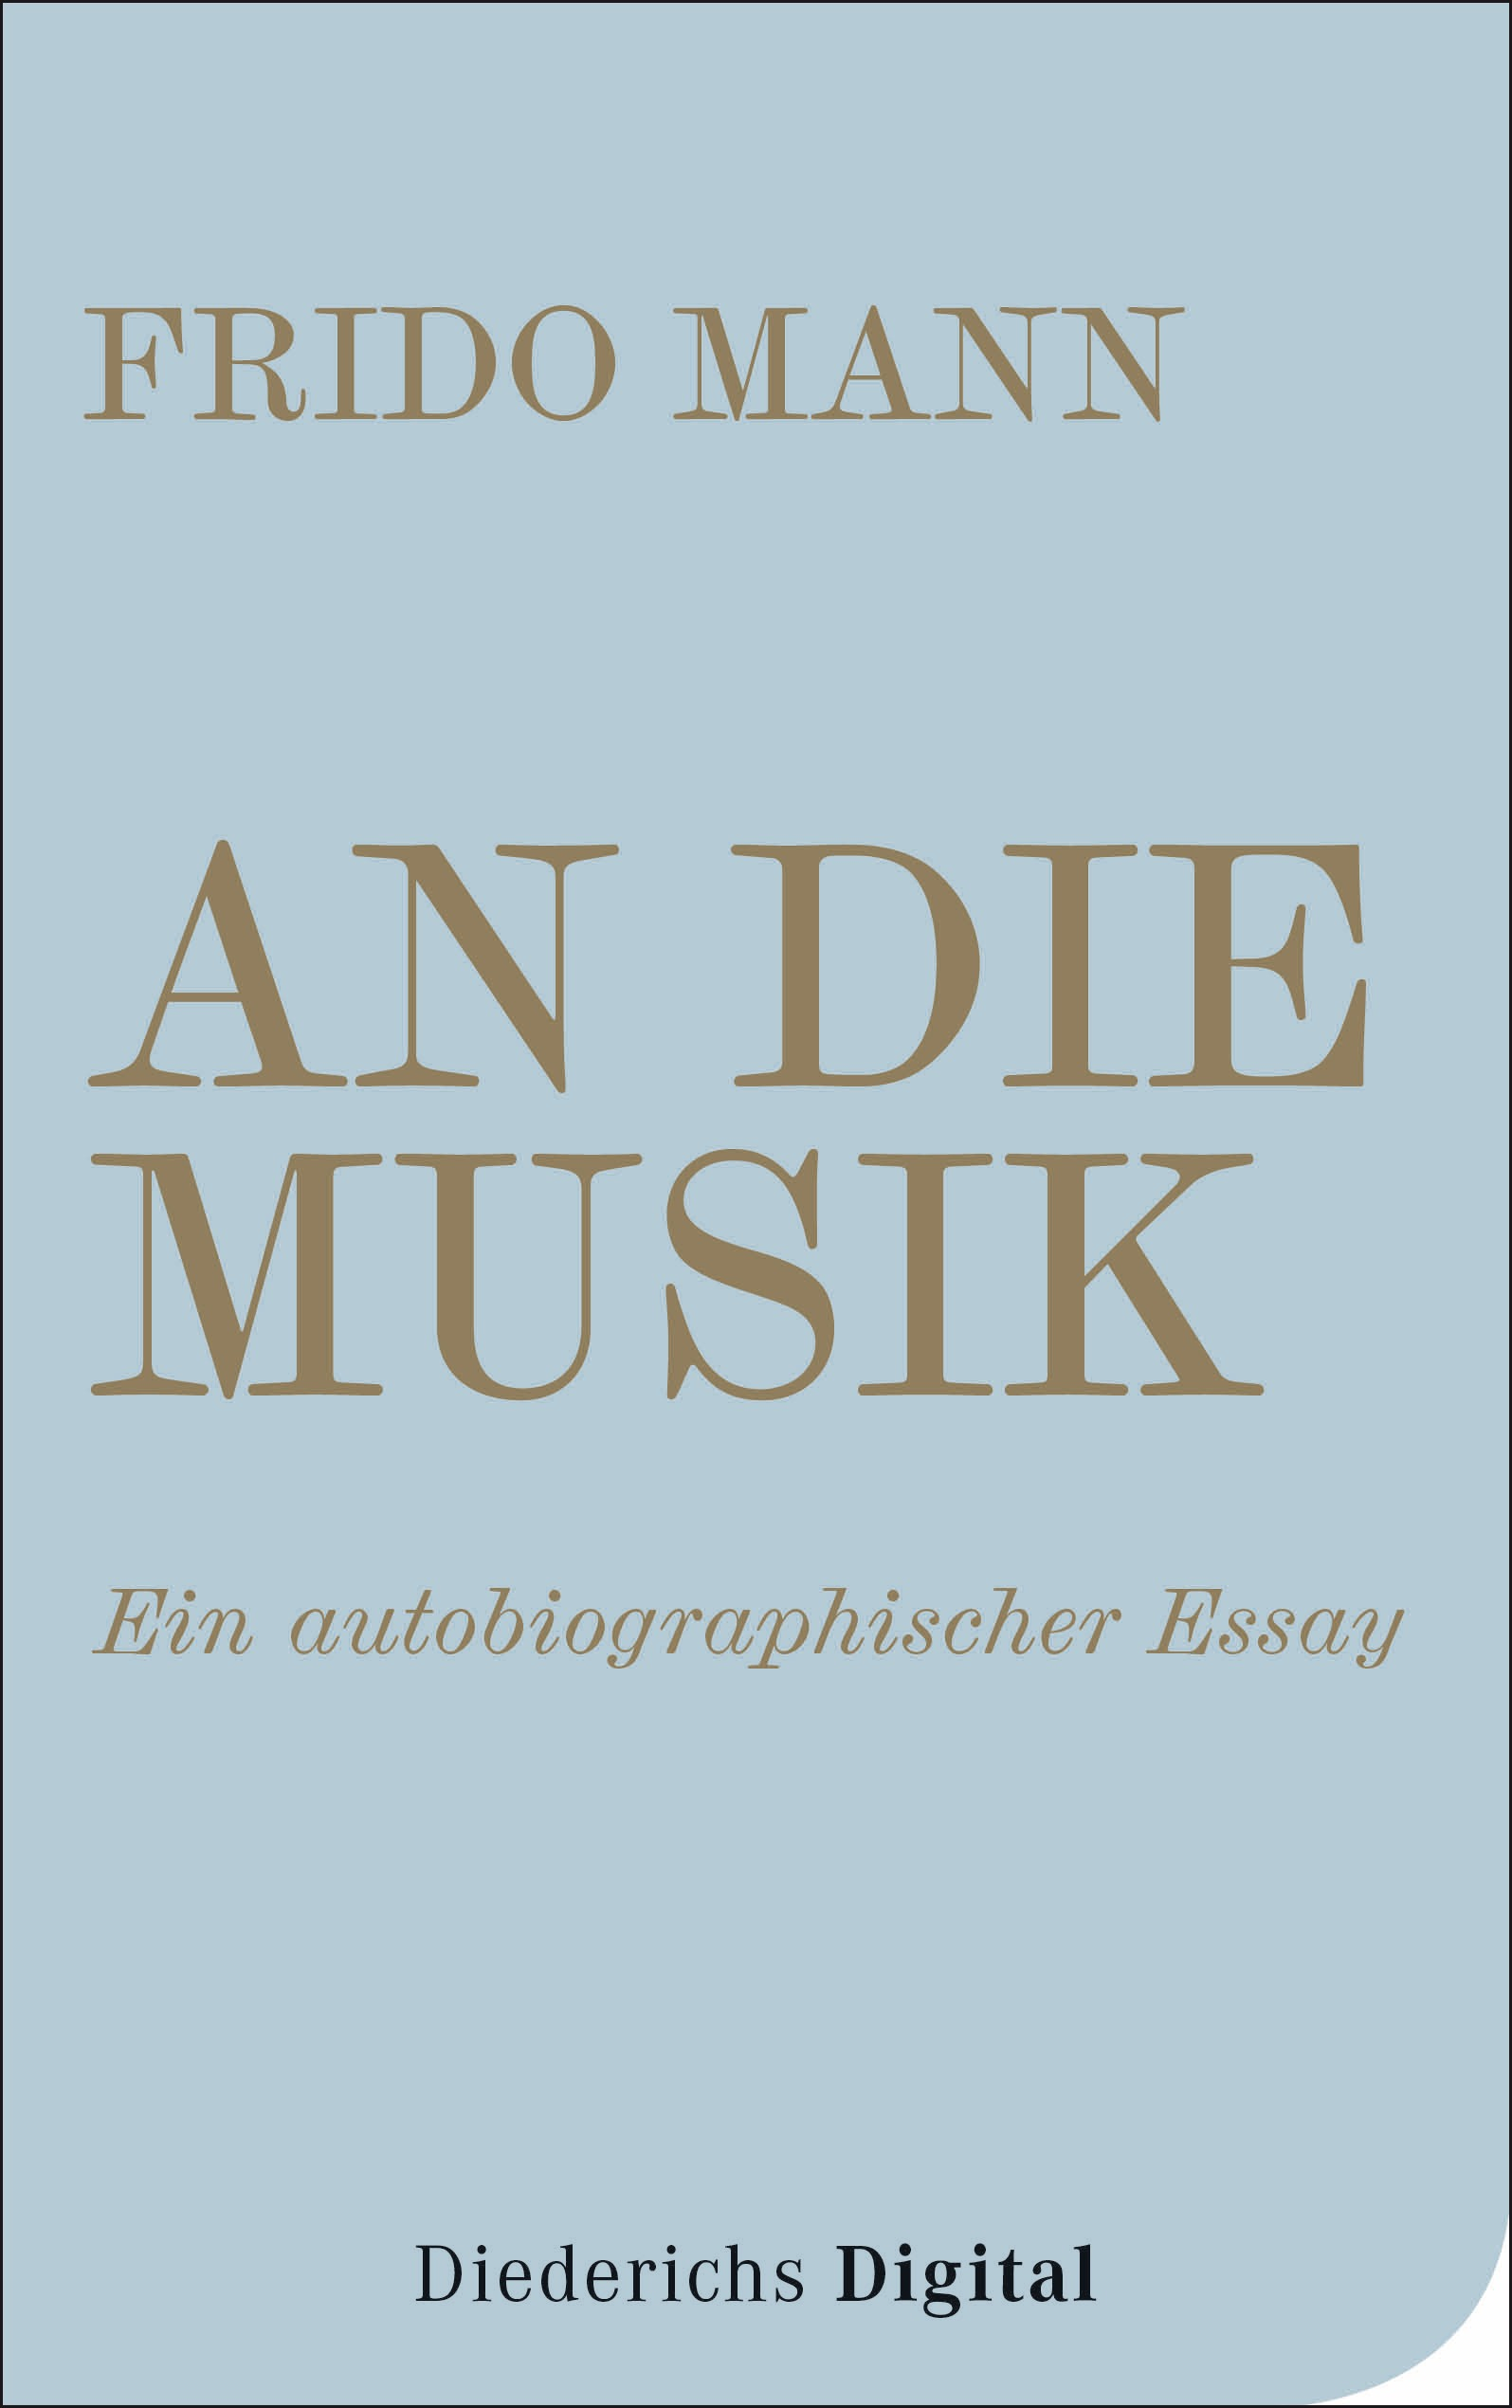 Short essay on culture and music